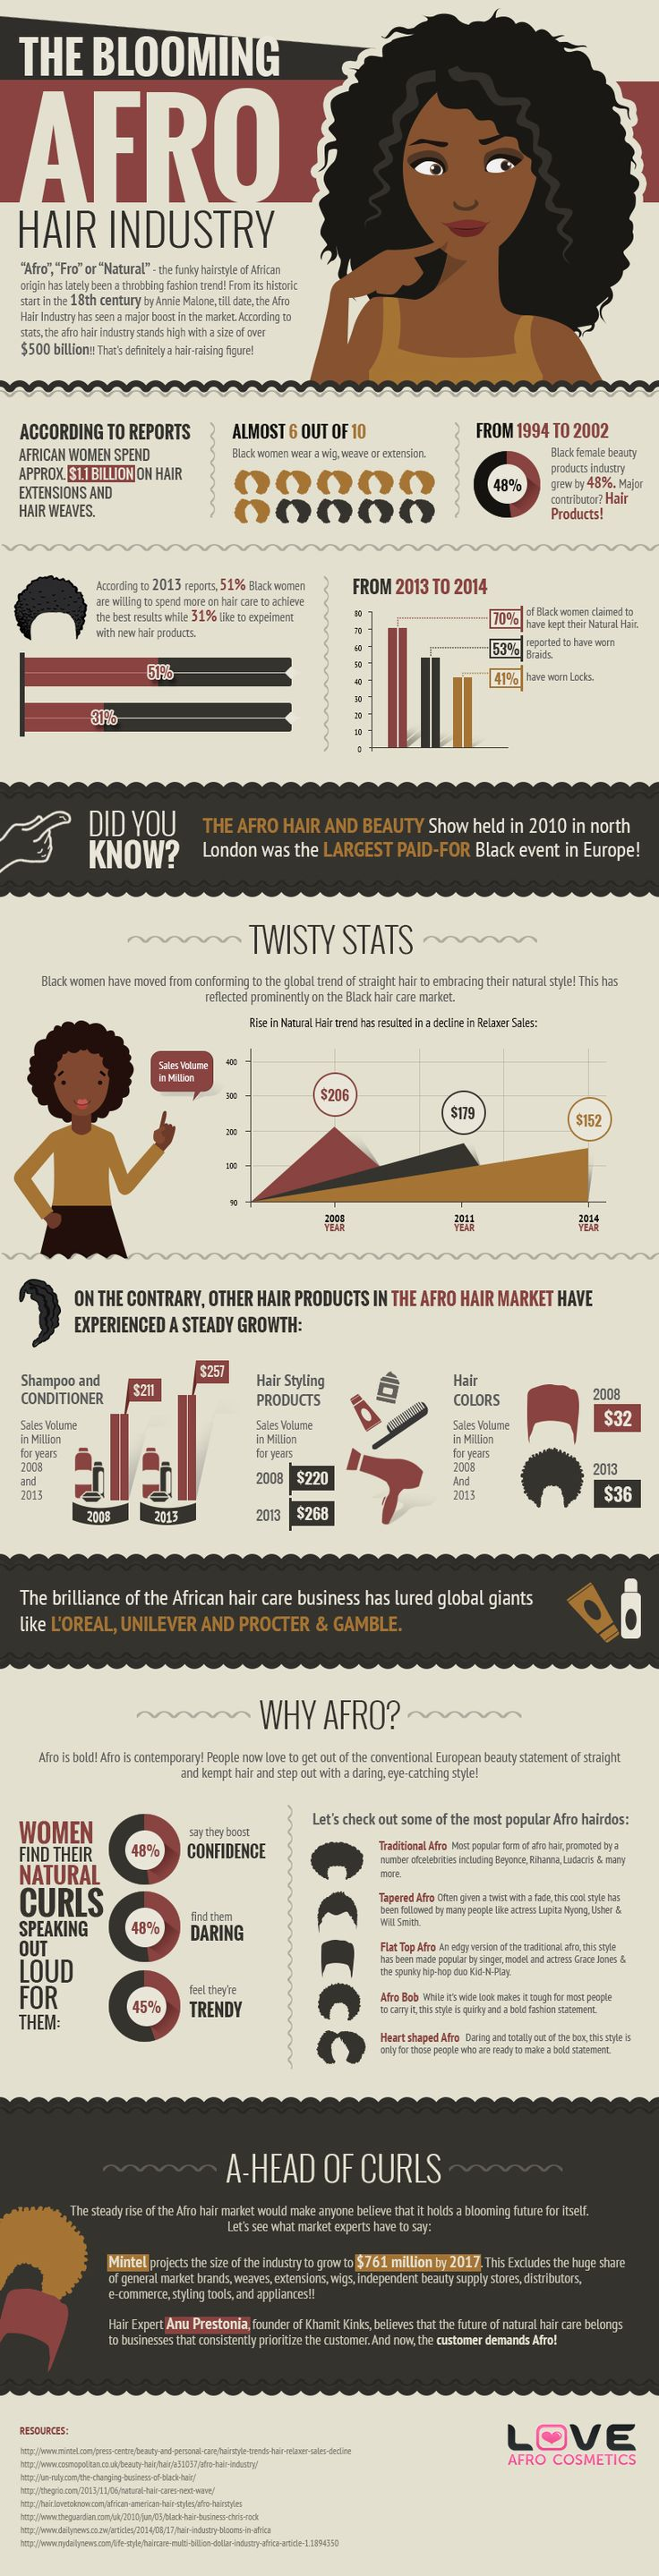 Afro Hair Industry – Facts and Stats - Morrocco Method